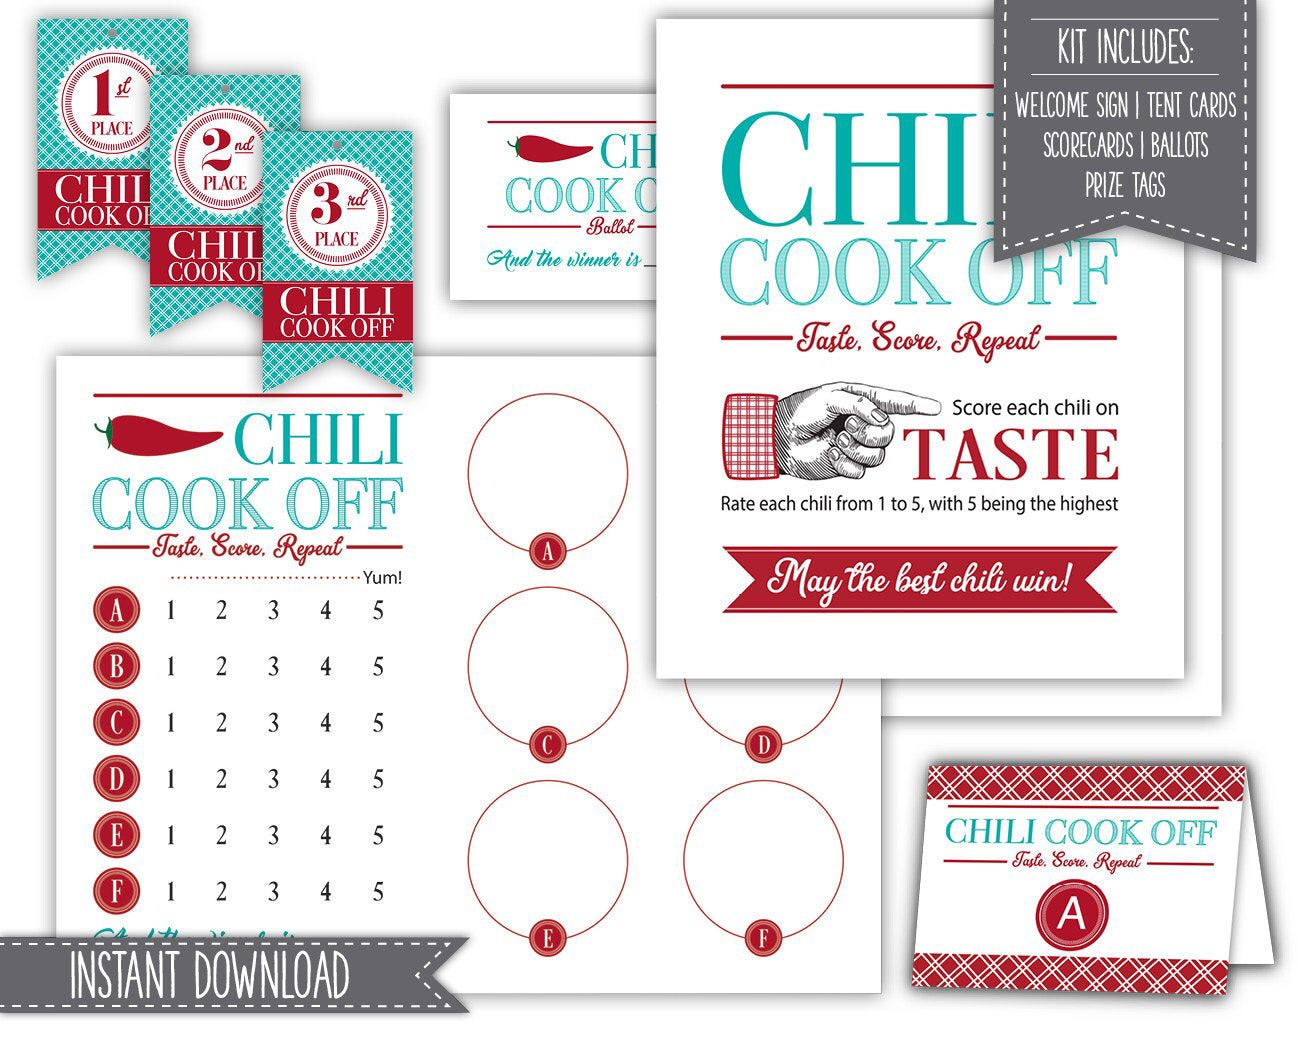 Chili Cook Off Kit Instant Download Printable